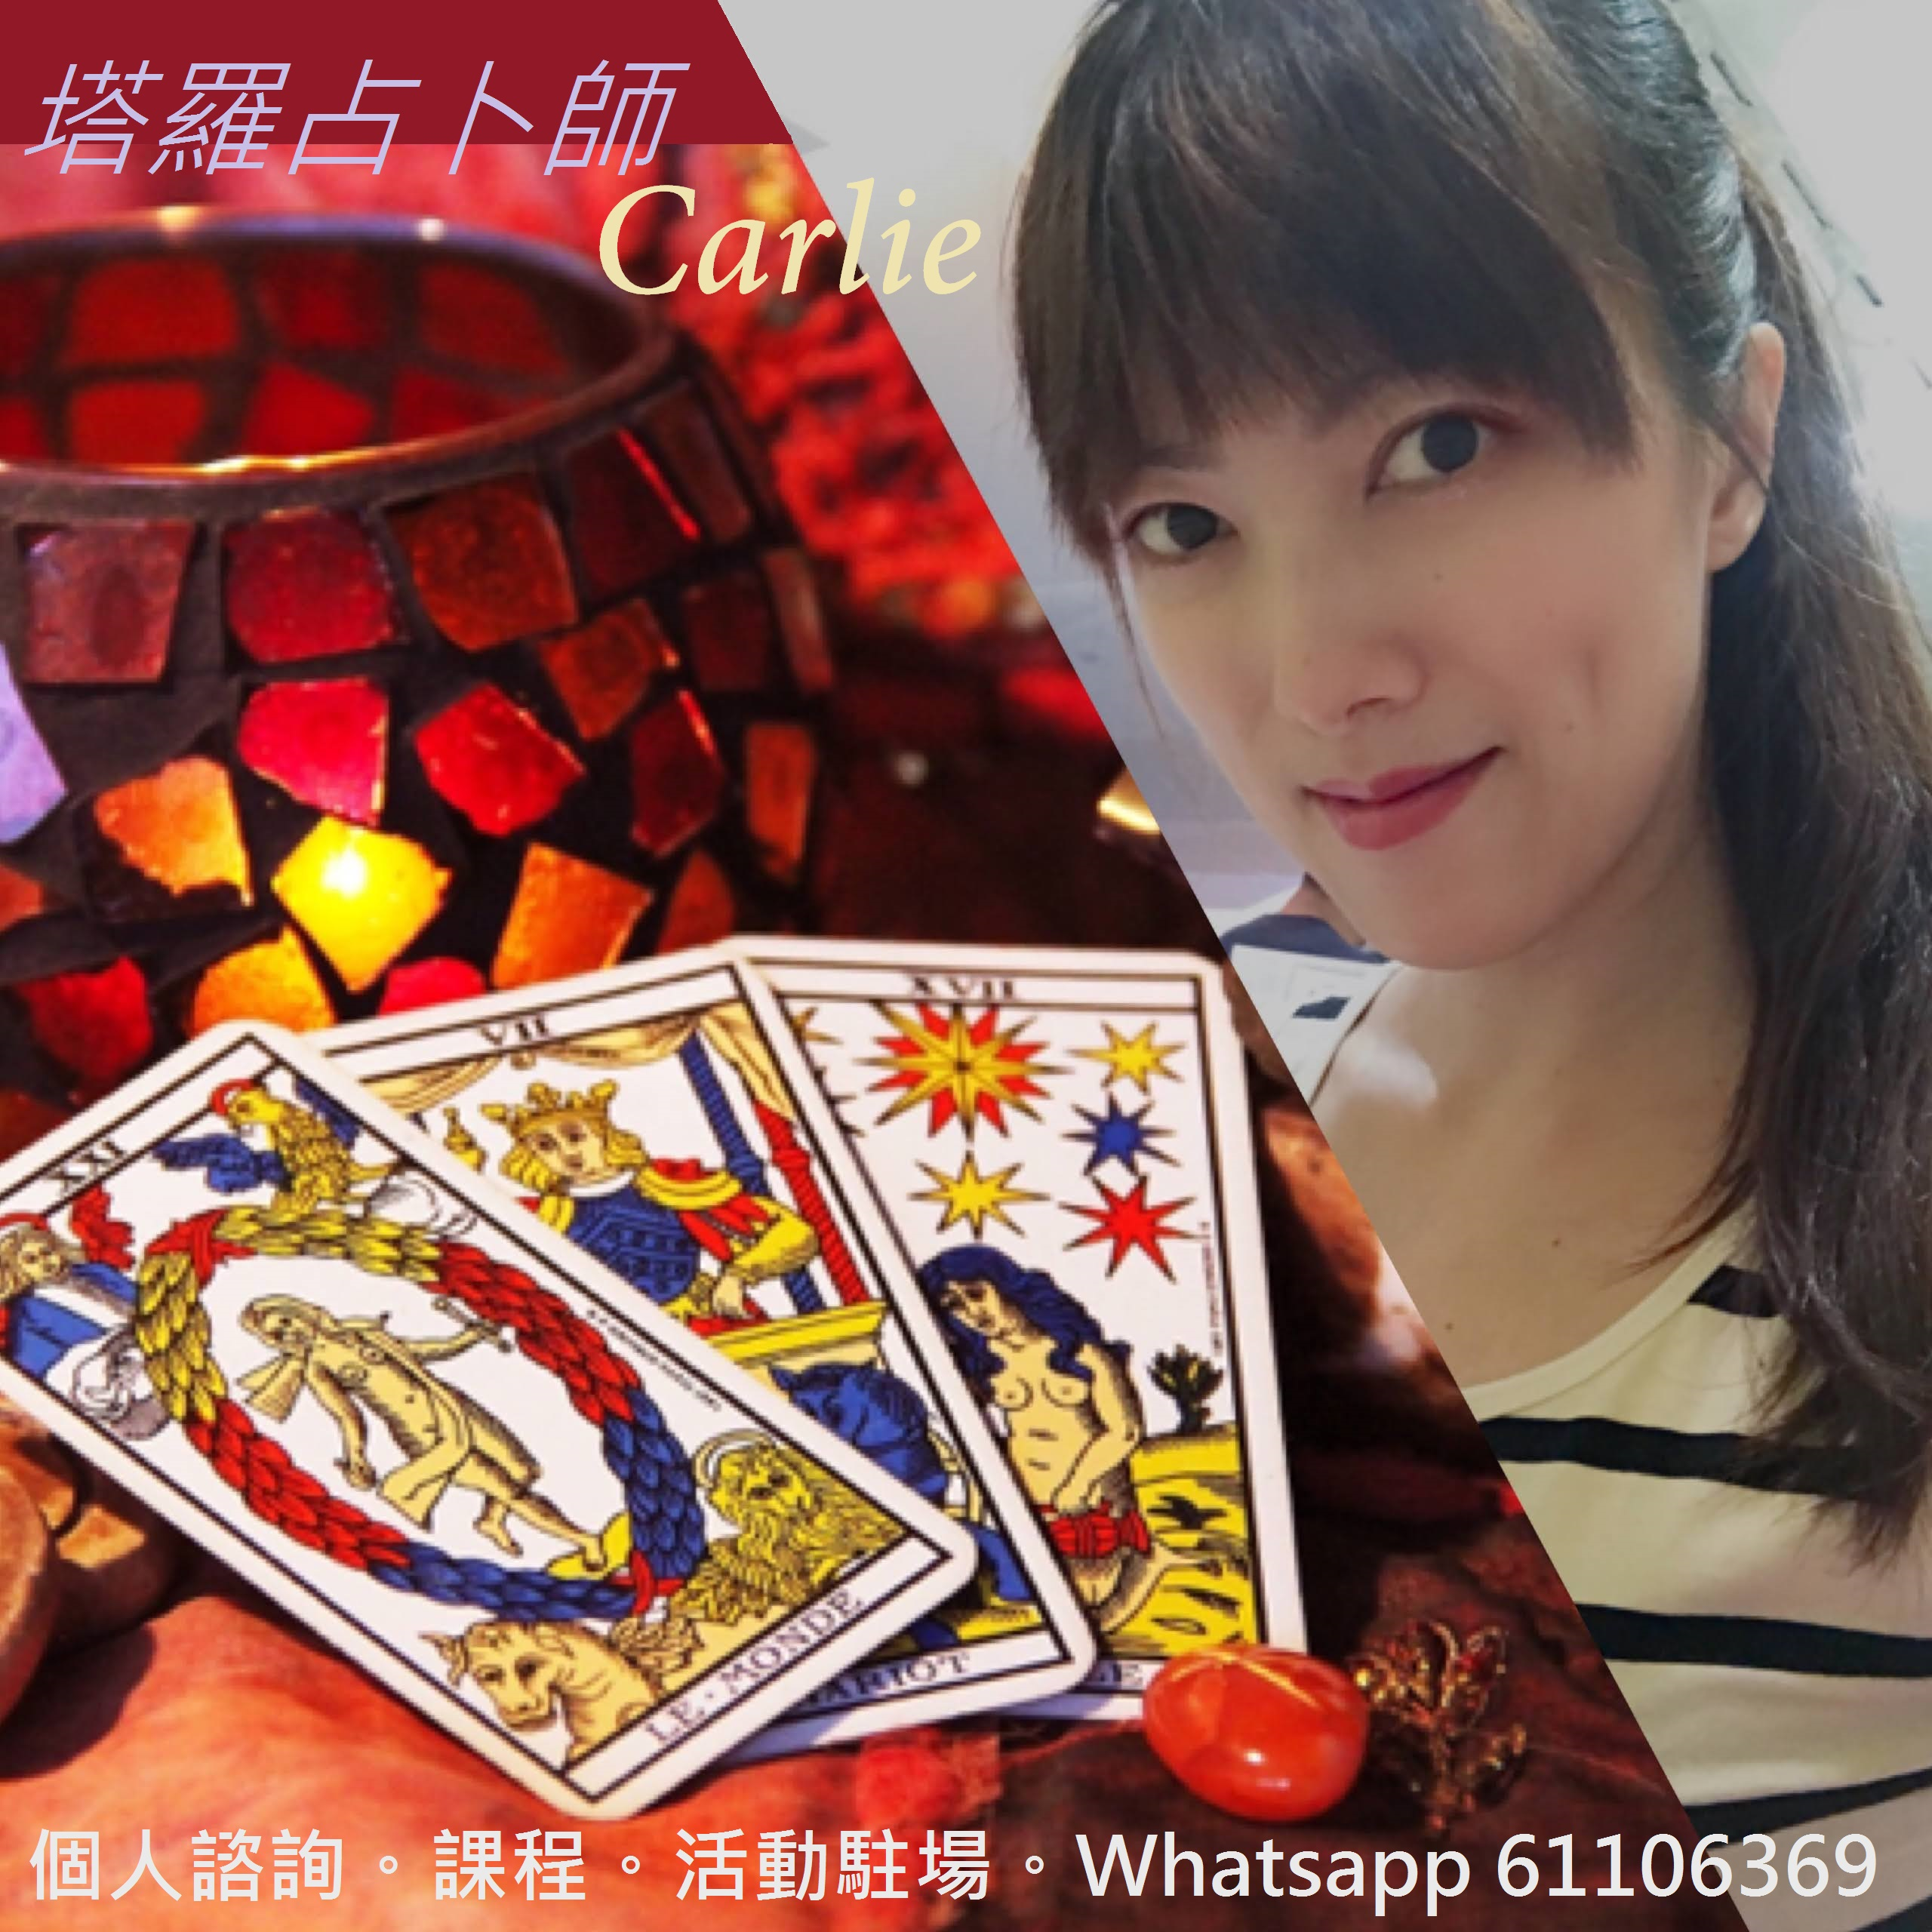 塔羅占卜天使前世能量治療課程香港carlie angel circle tarot spiritual course